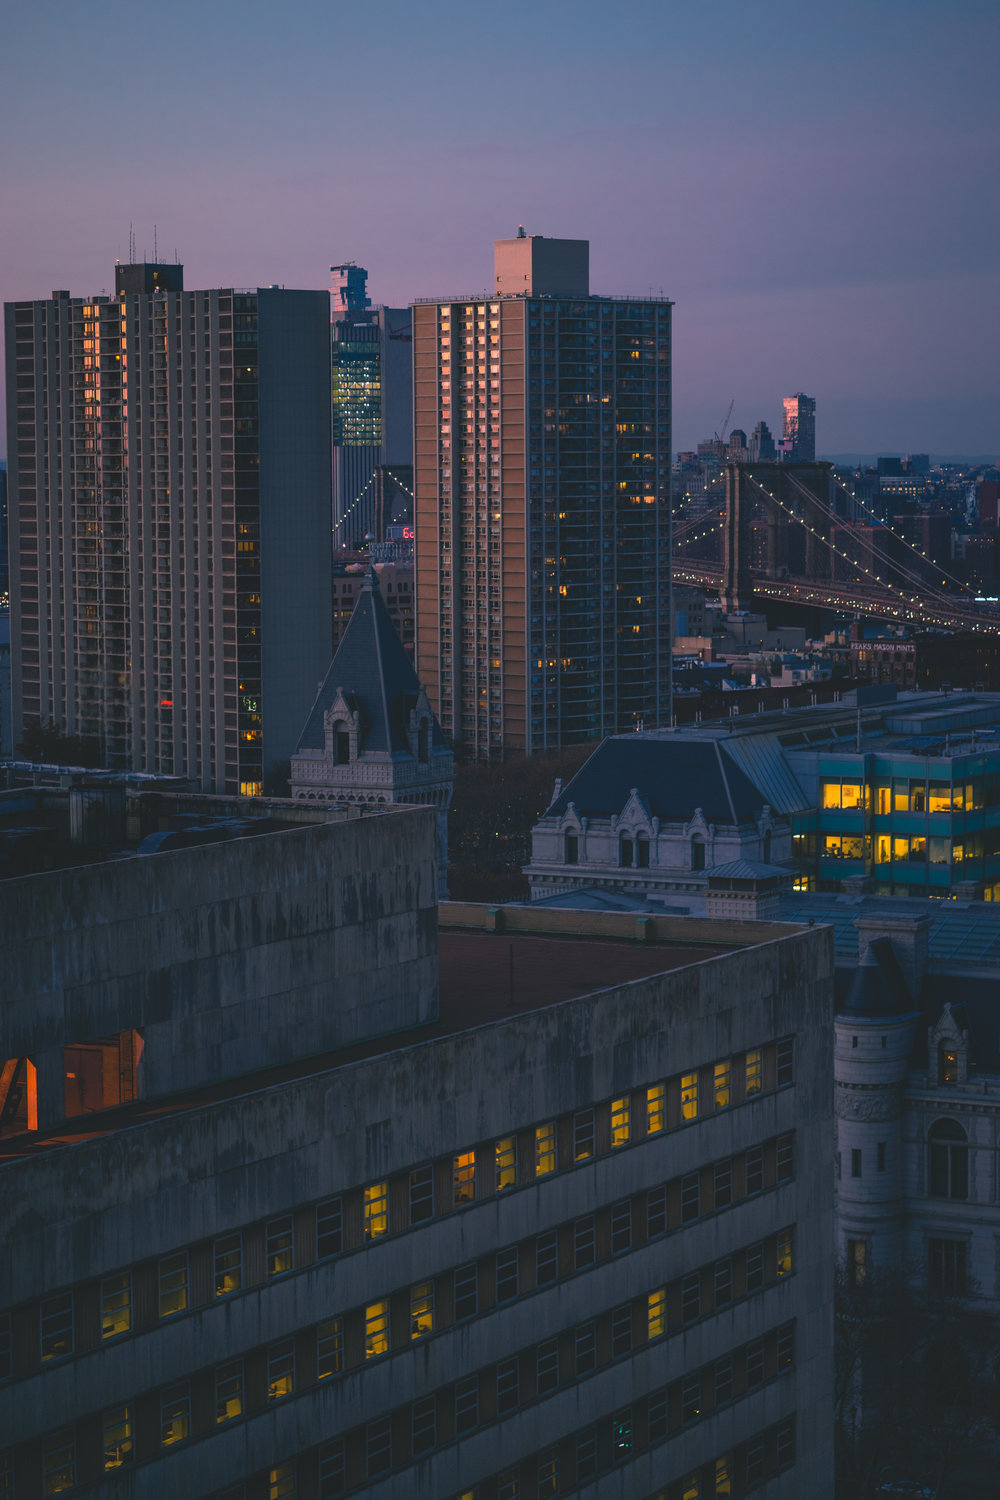 City of a thousand stories